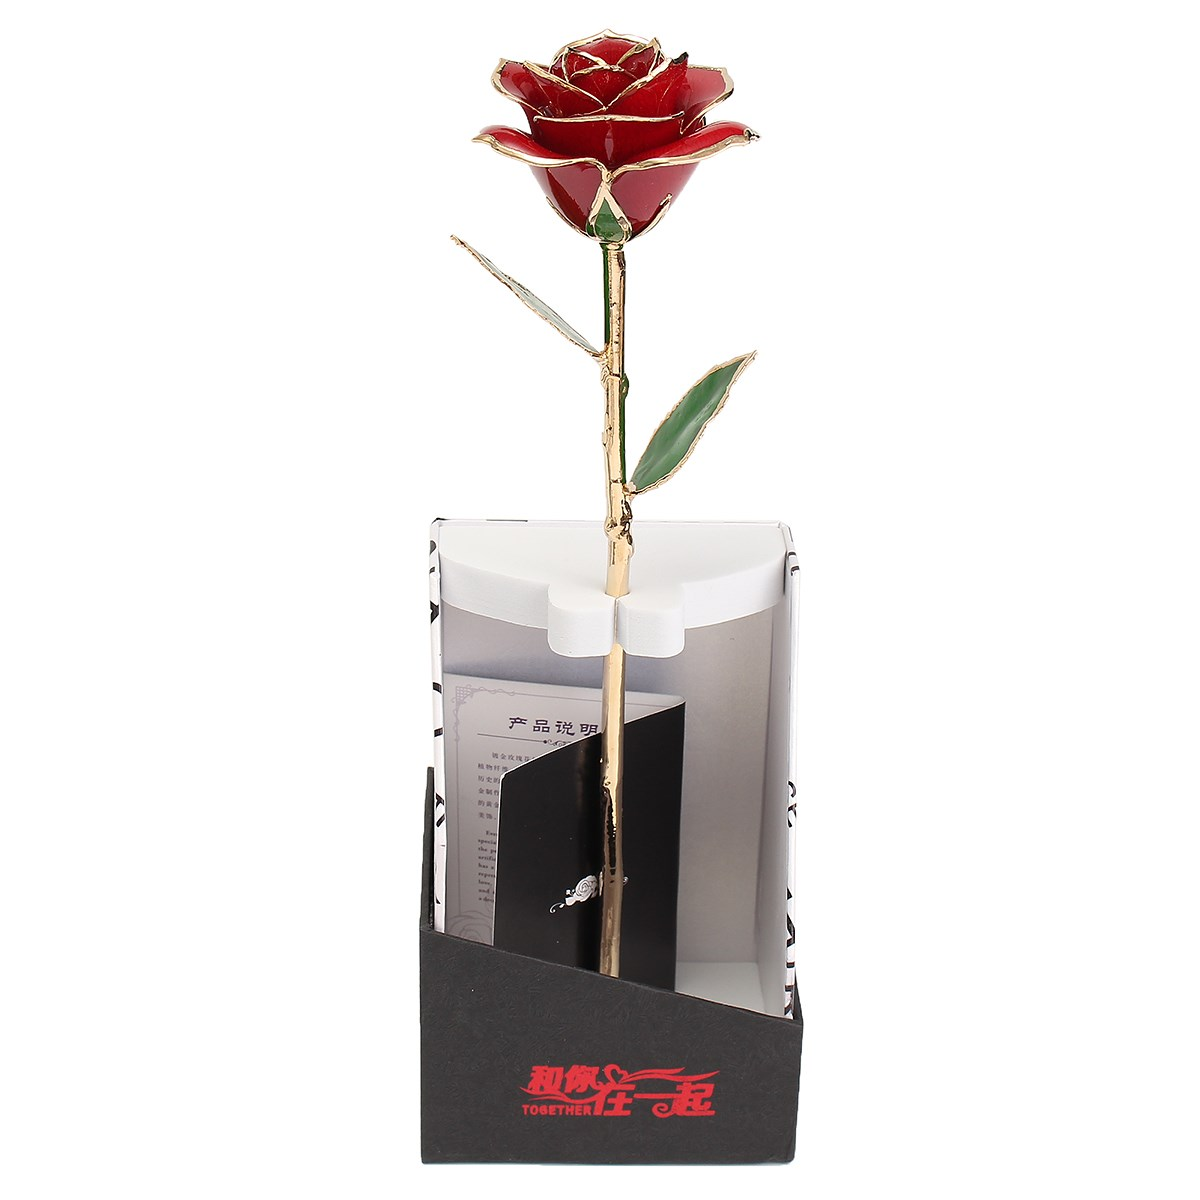 Genuine 24K Rose Flower Dipped Trim Long Stem Rose Flower Glass Valentine Mother's Day Foil Home Decoration Romantic